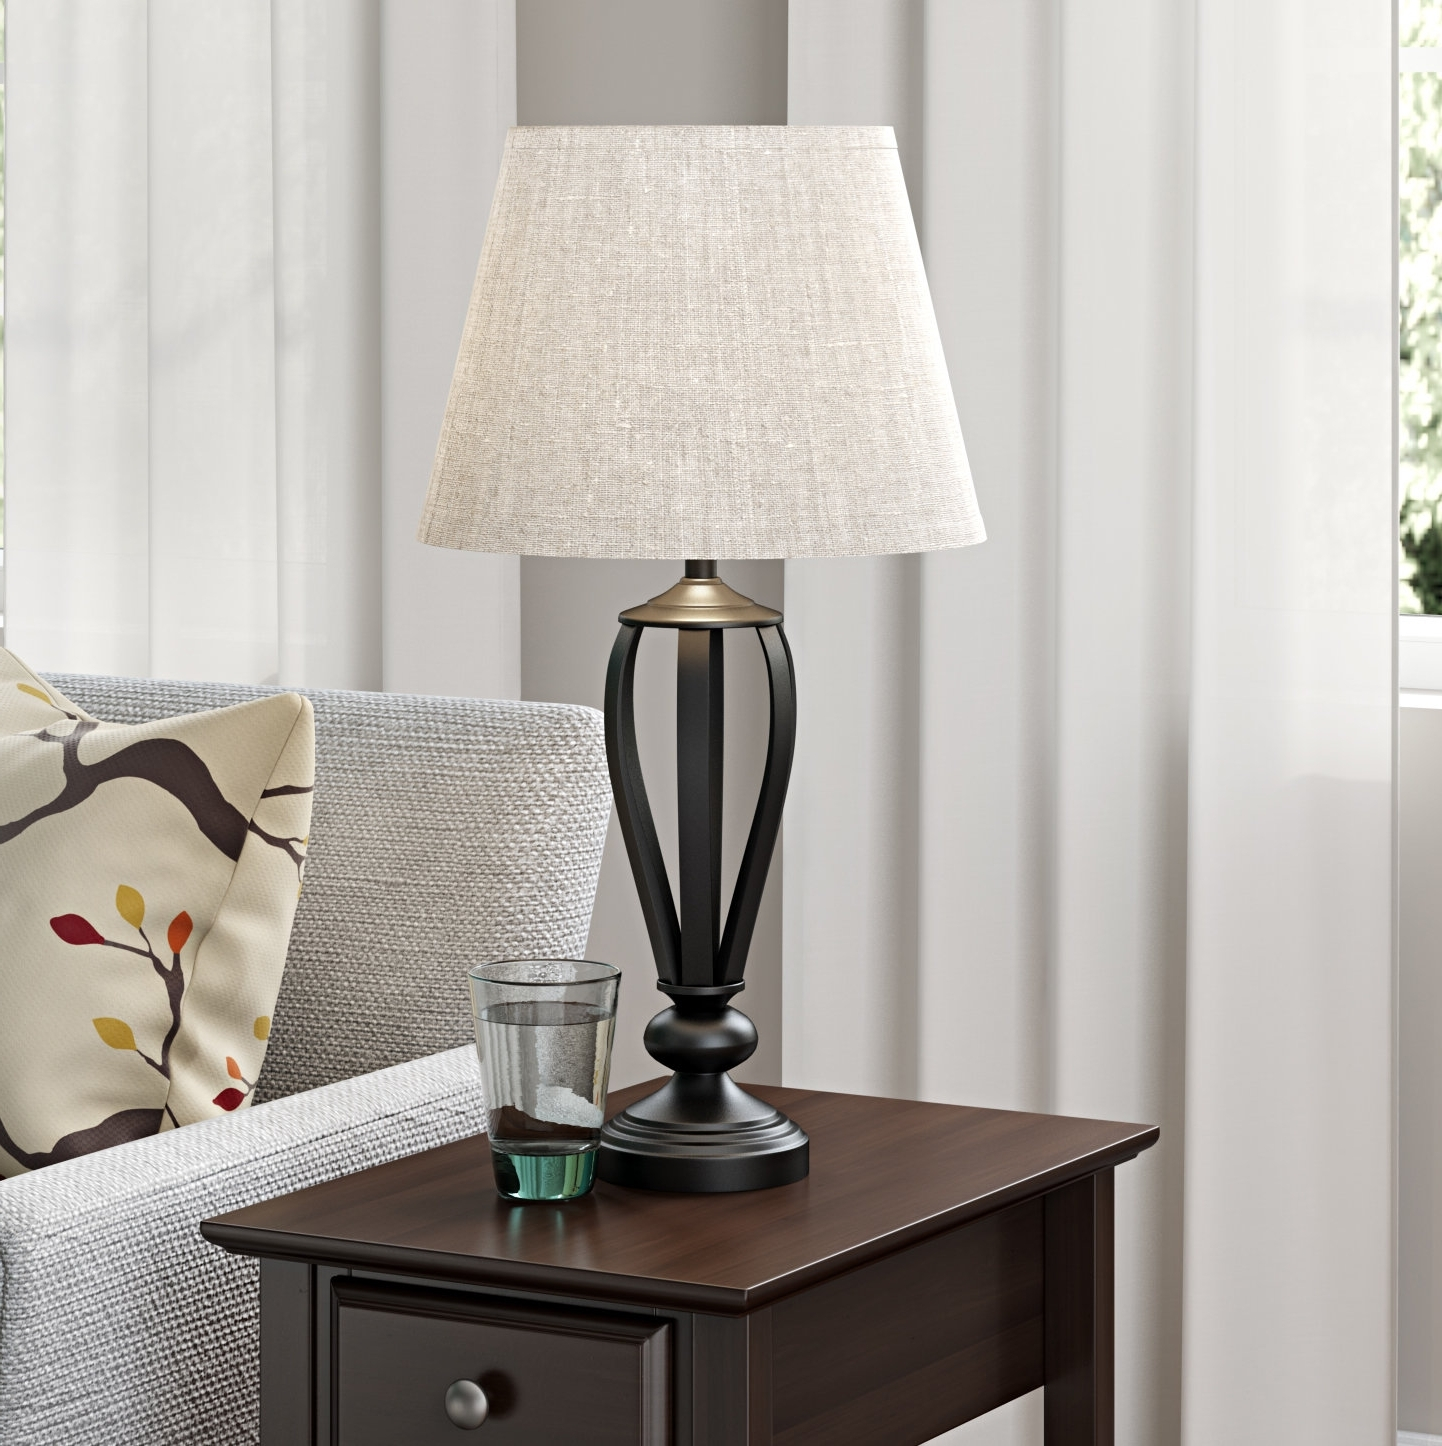 Wayfair For Most Recent Table Lamps For Living Room (View 13 of 15)